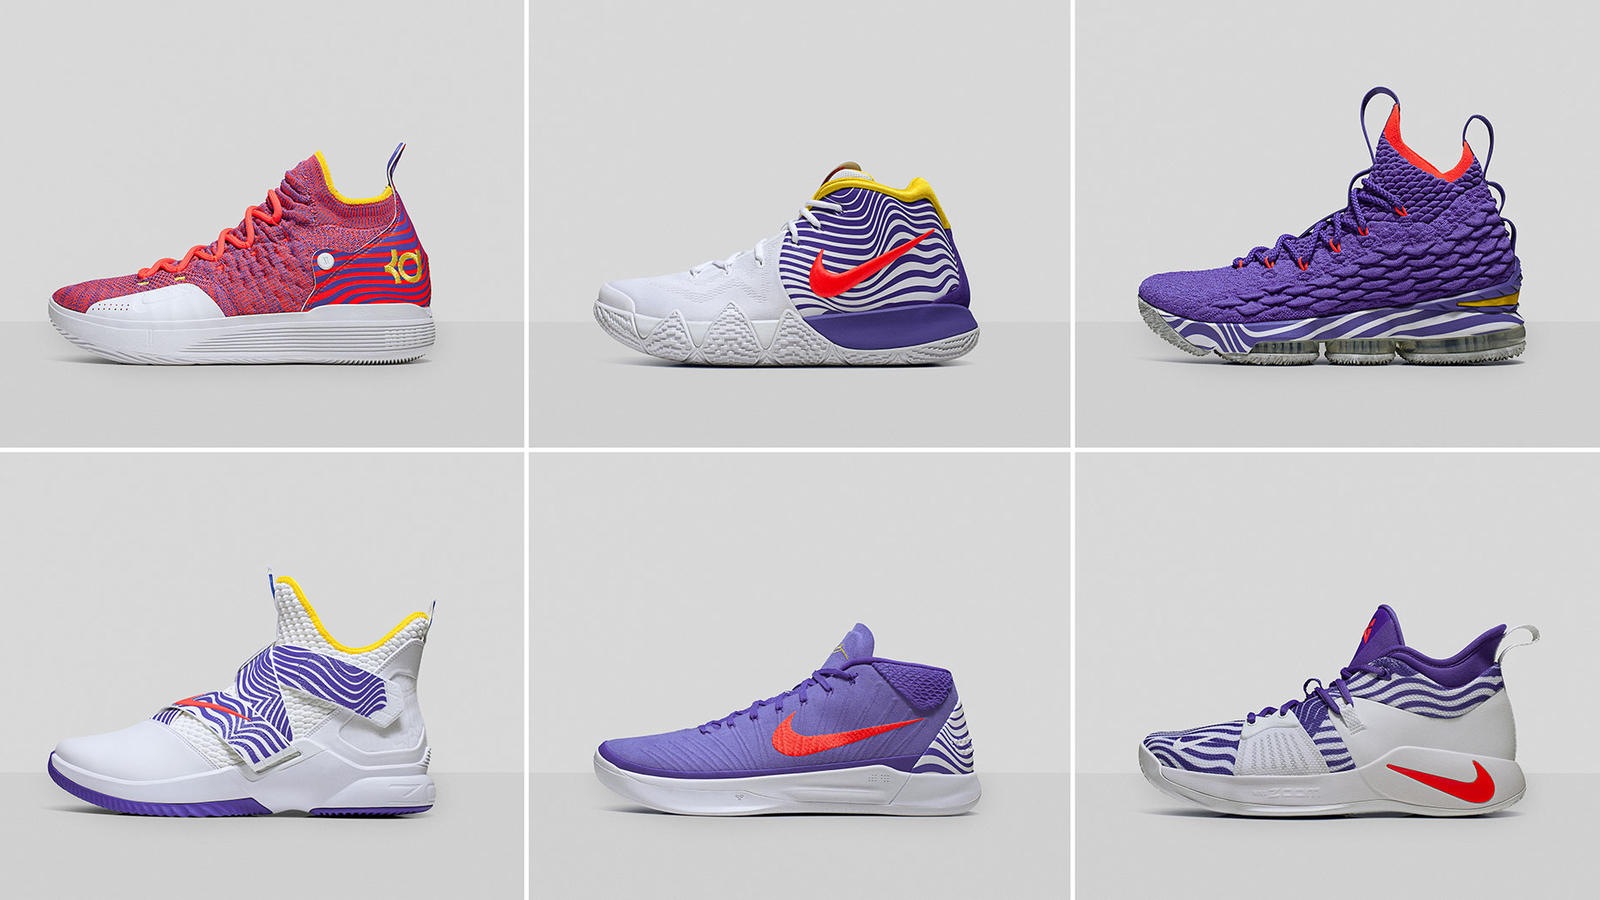 bfc8724cf 2018 WNBA All-Star Game PE Collection - Nike News